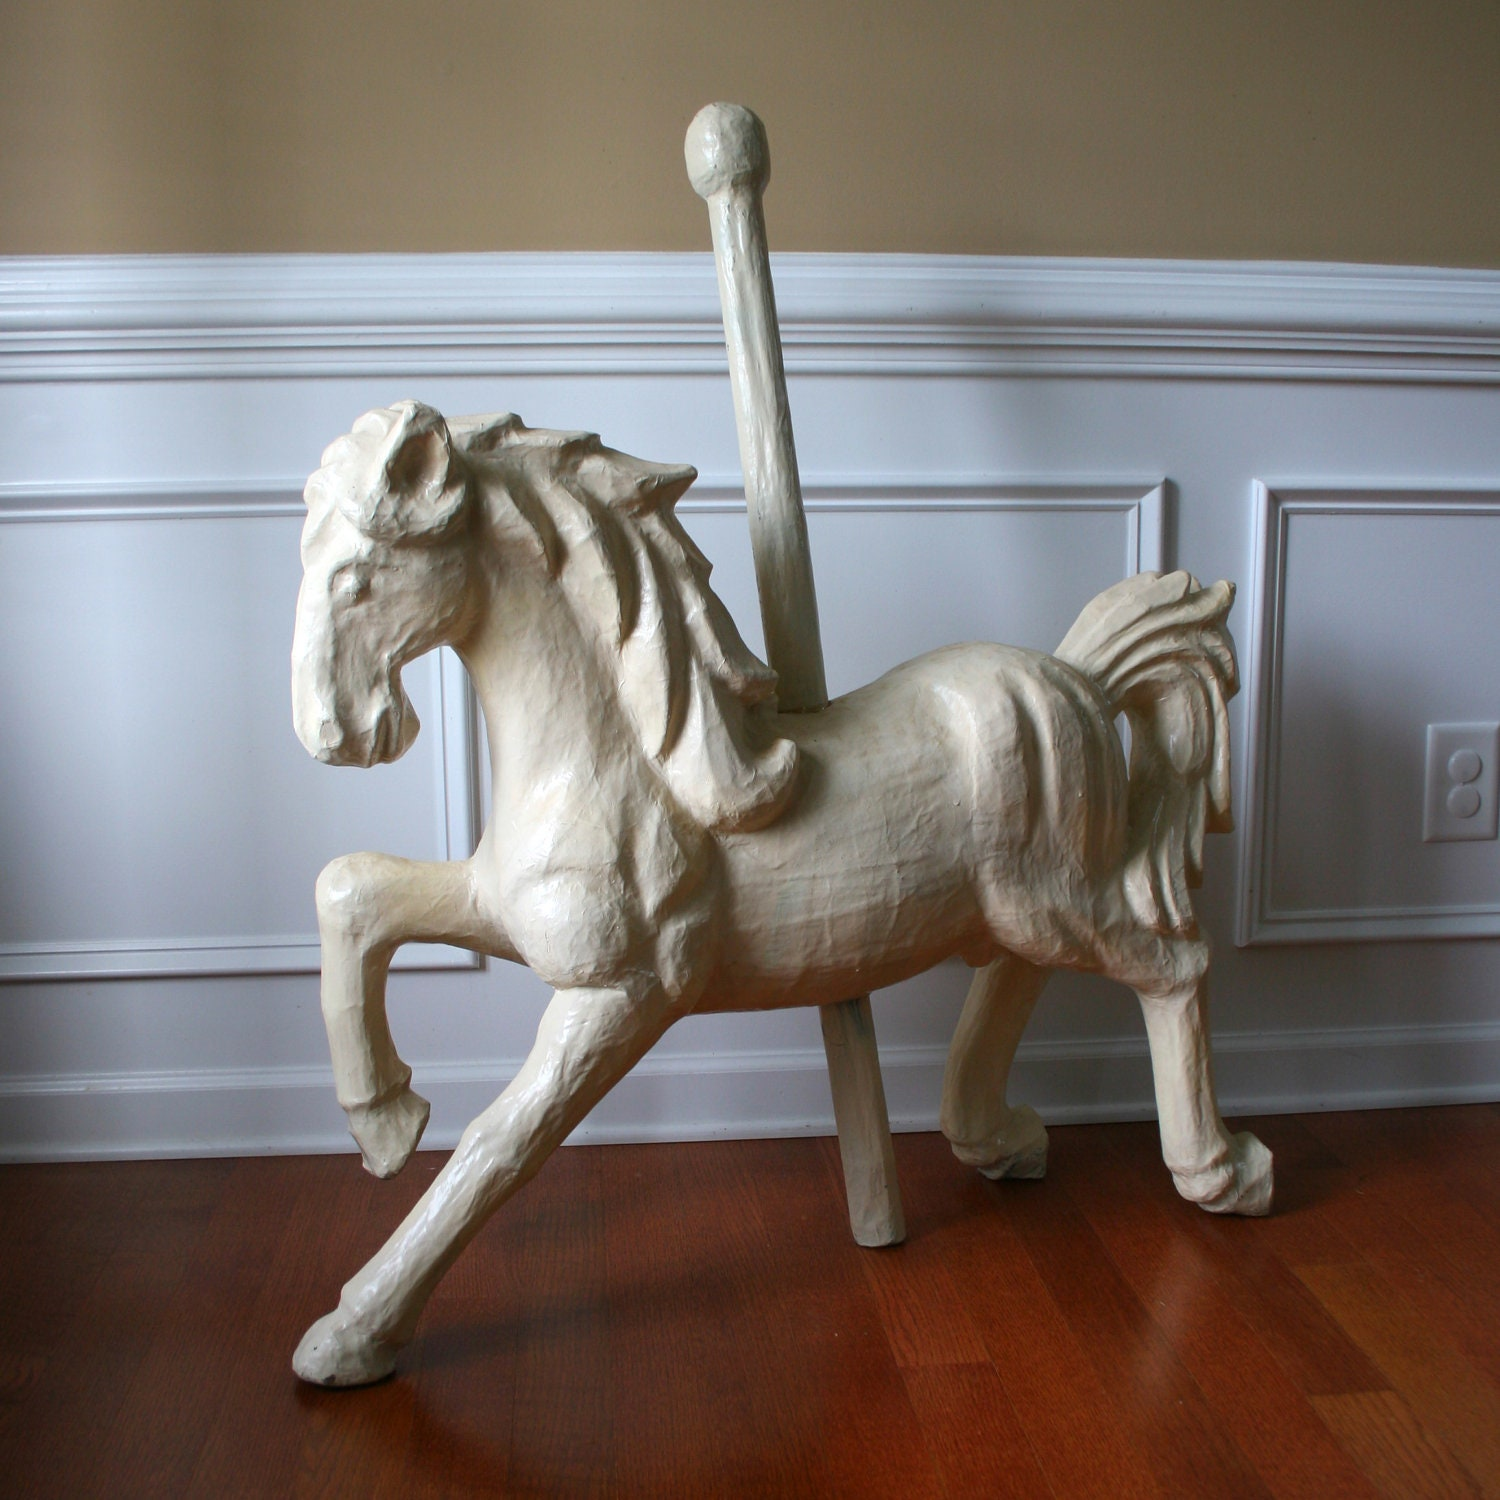 Https Www Etsy Com Listing 115150833 Paper Mache Carousel Horse Unique Home